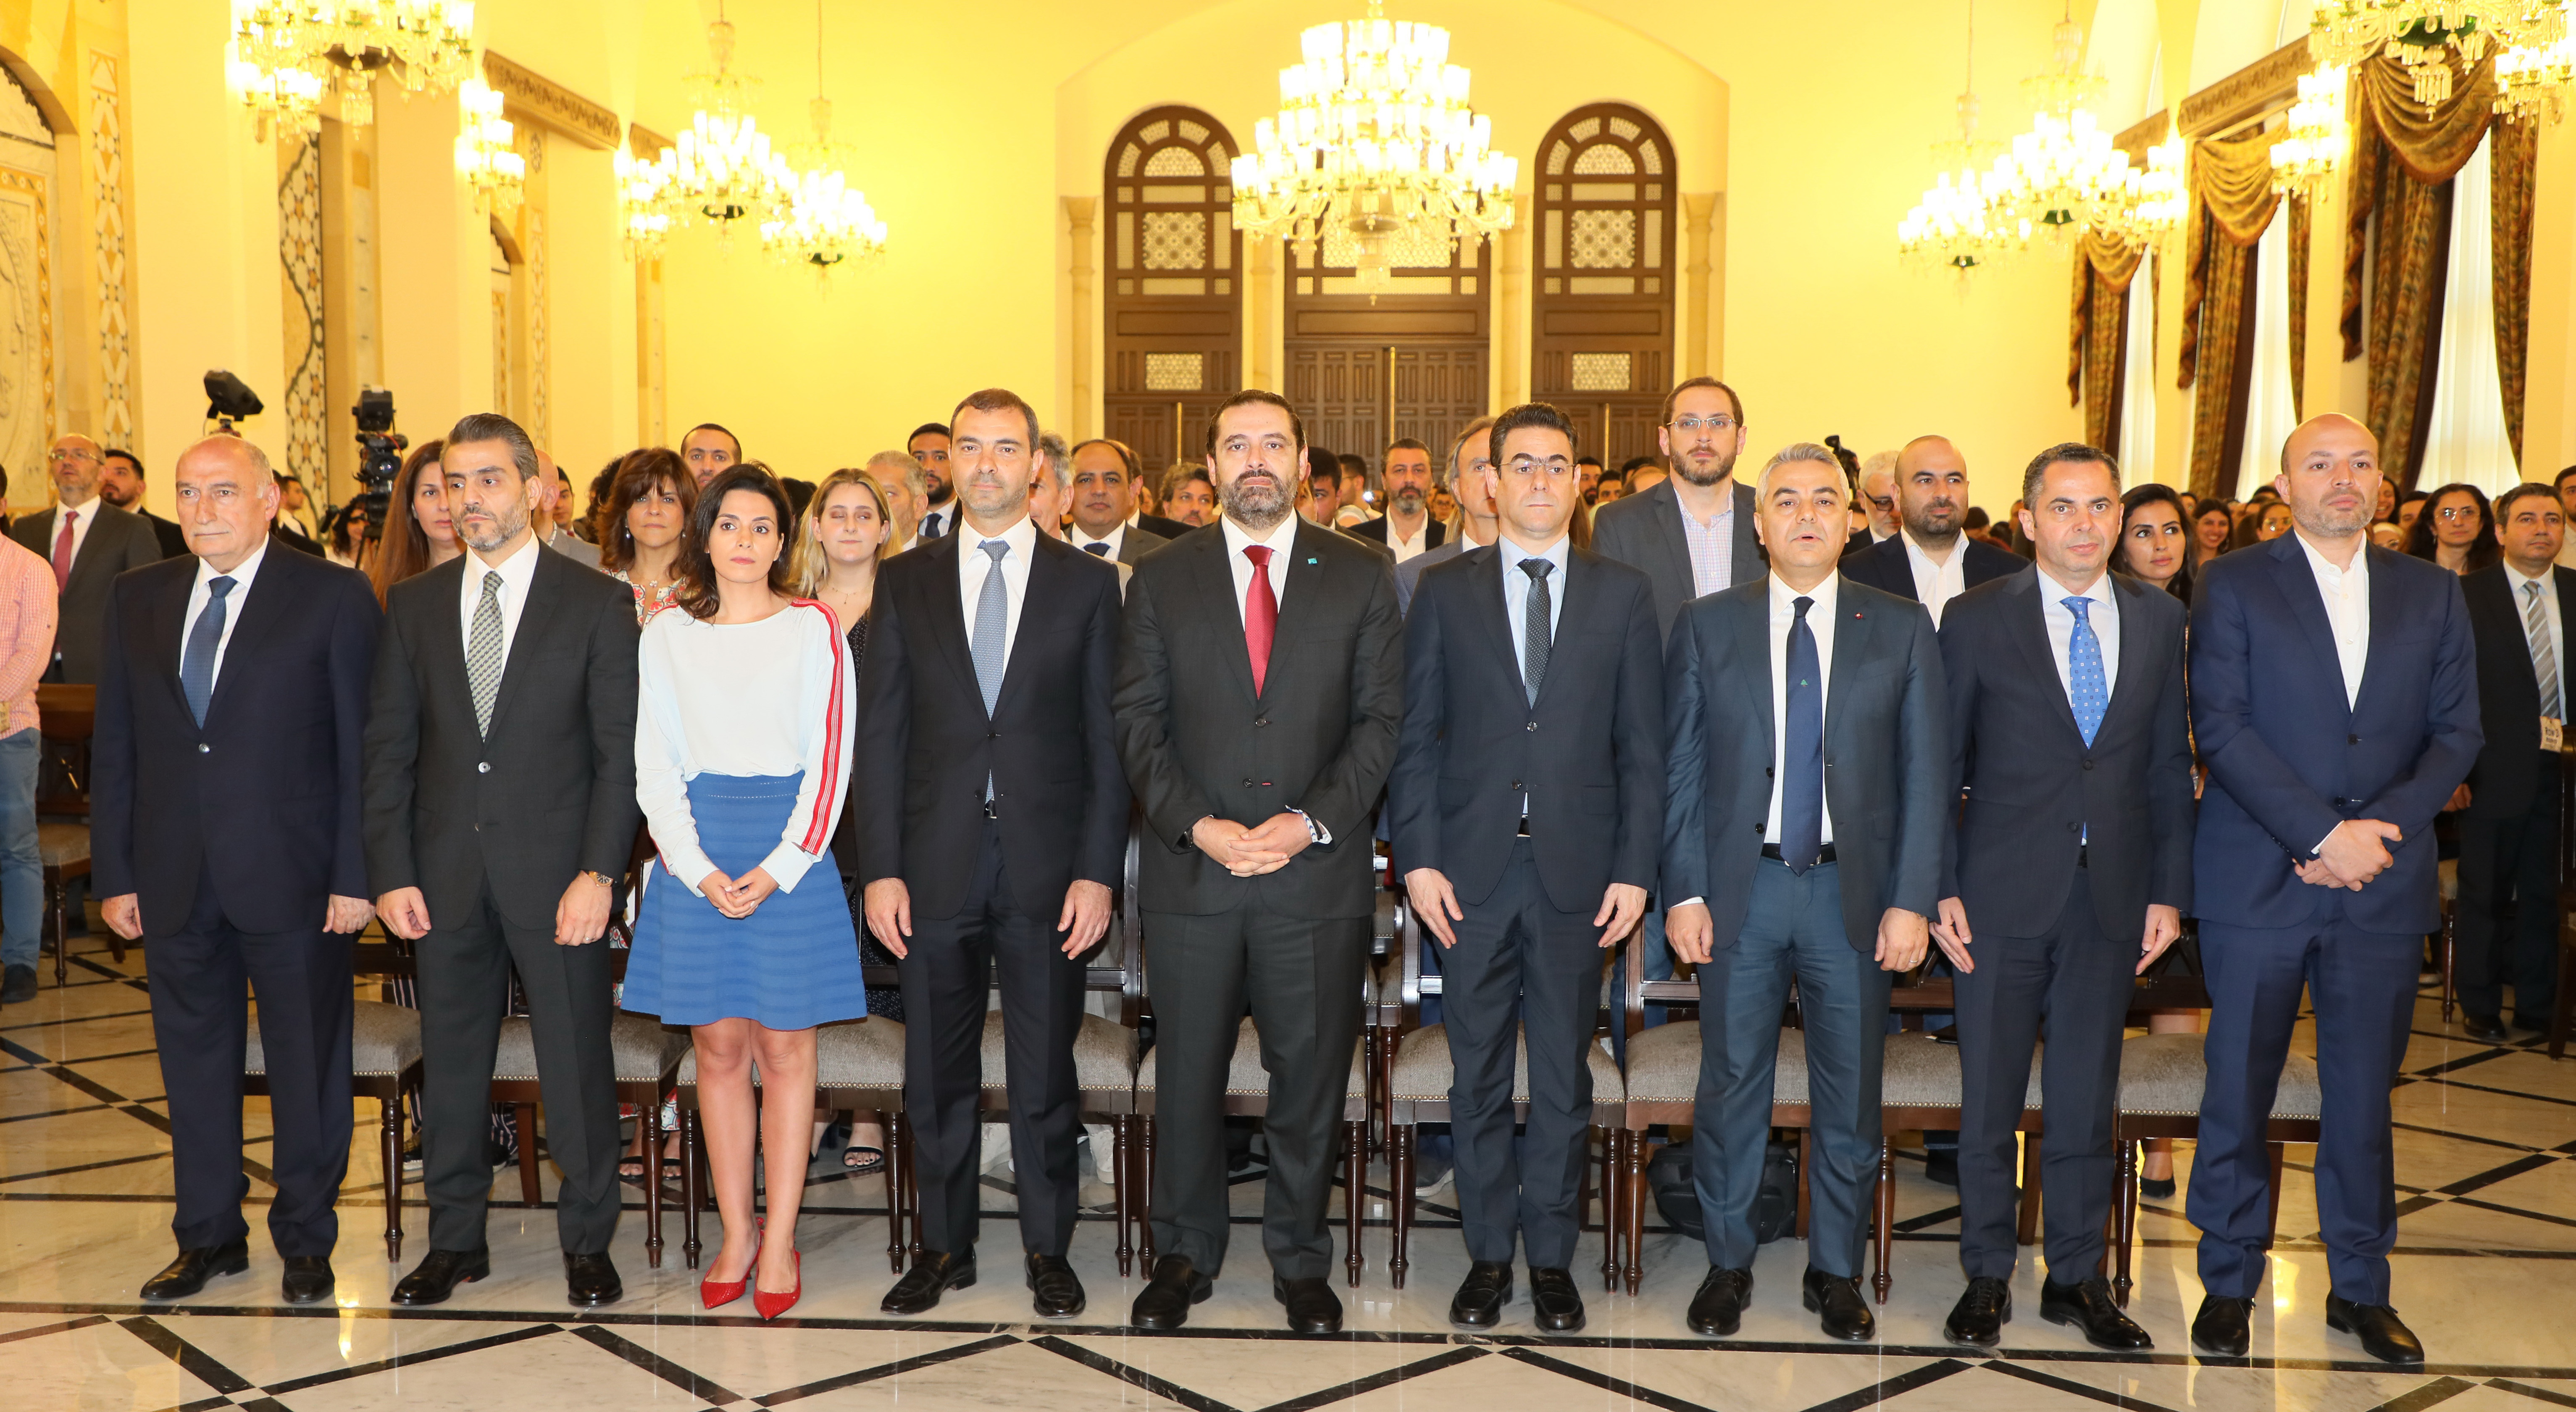 Pr Minister Saad Hariri Attends a Tournement at the Grand Serail 3